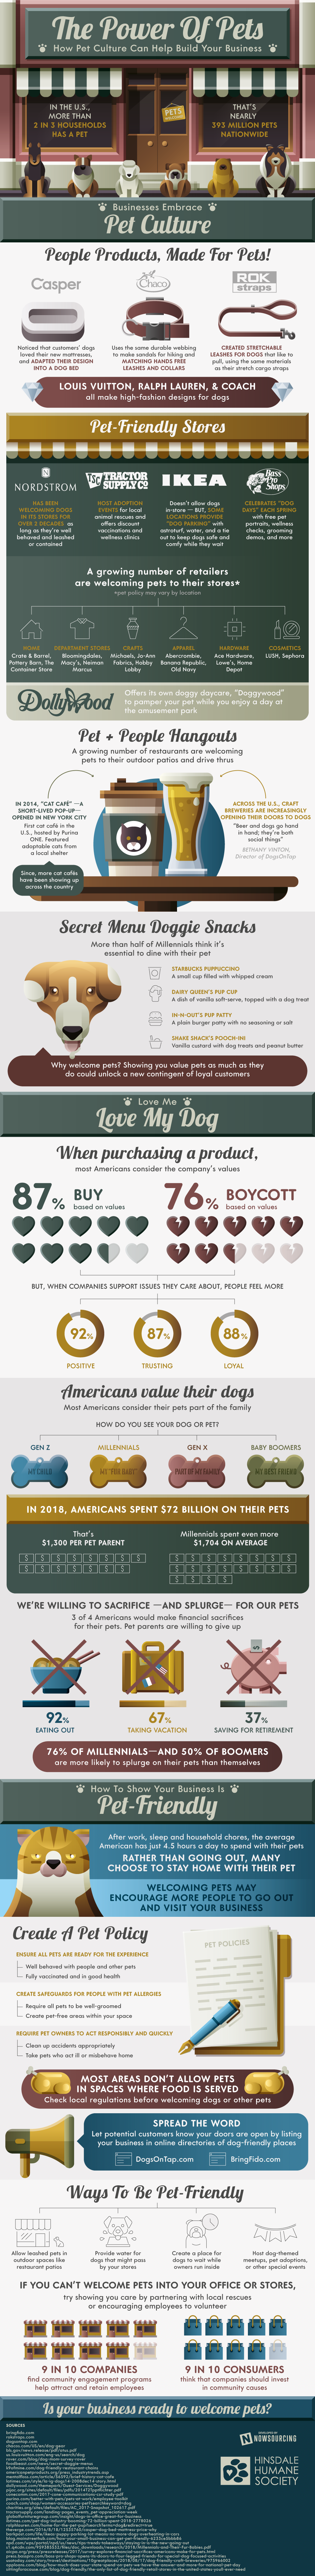 How Pets Culture Can Help Build Your Business #infographic